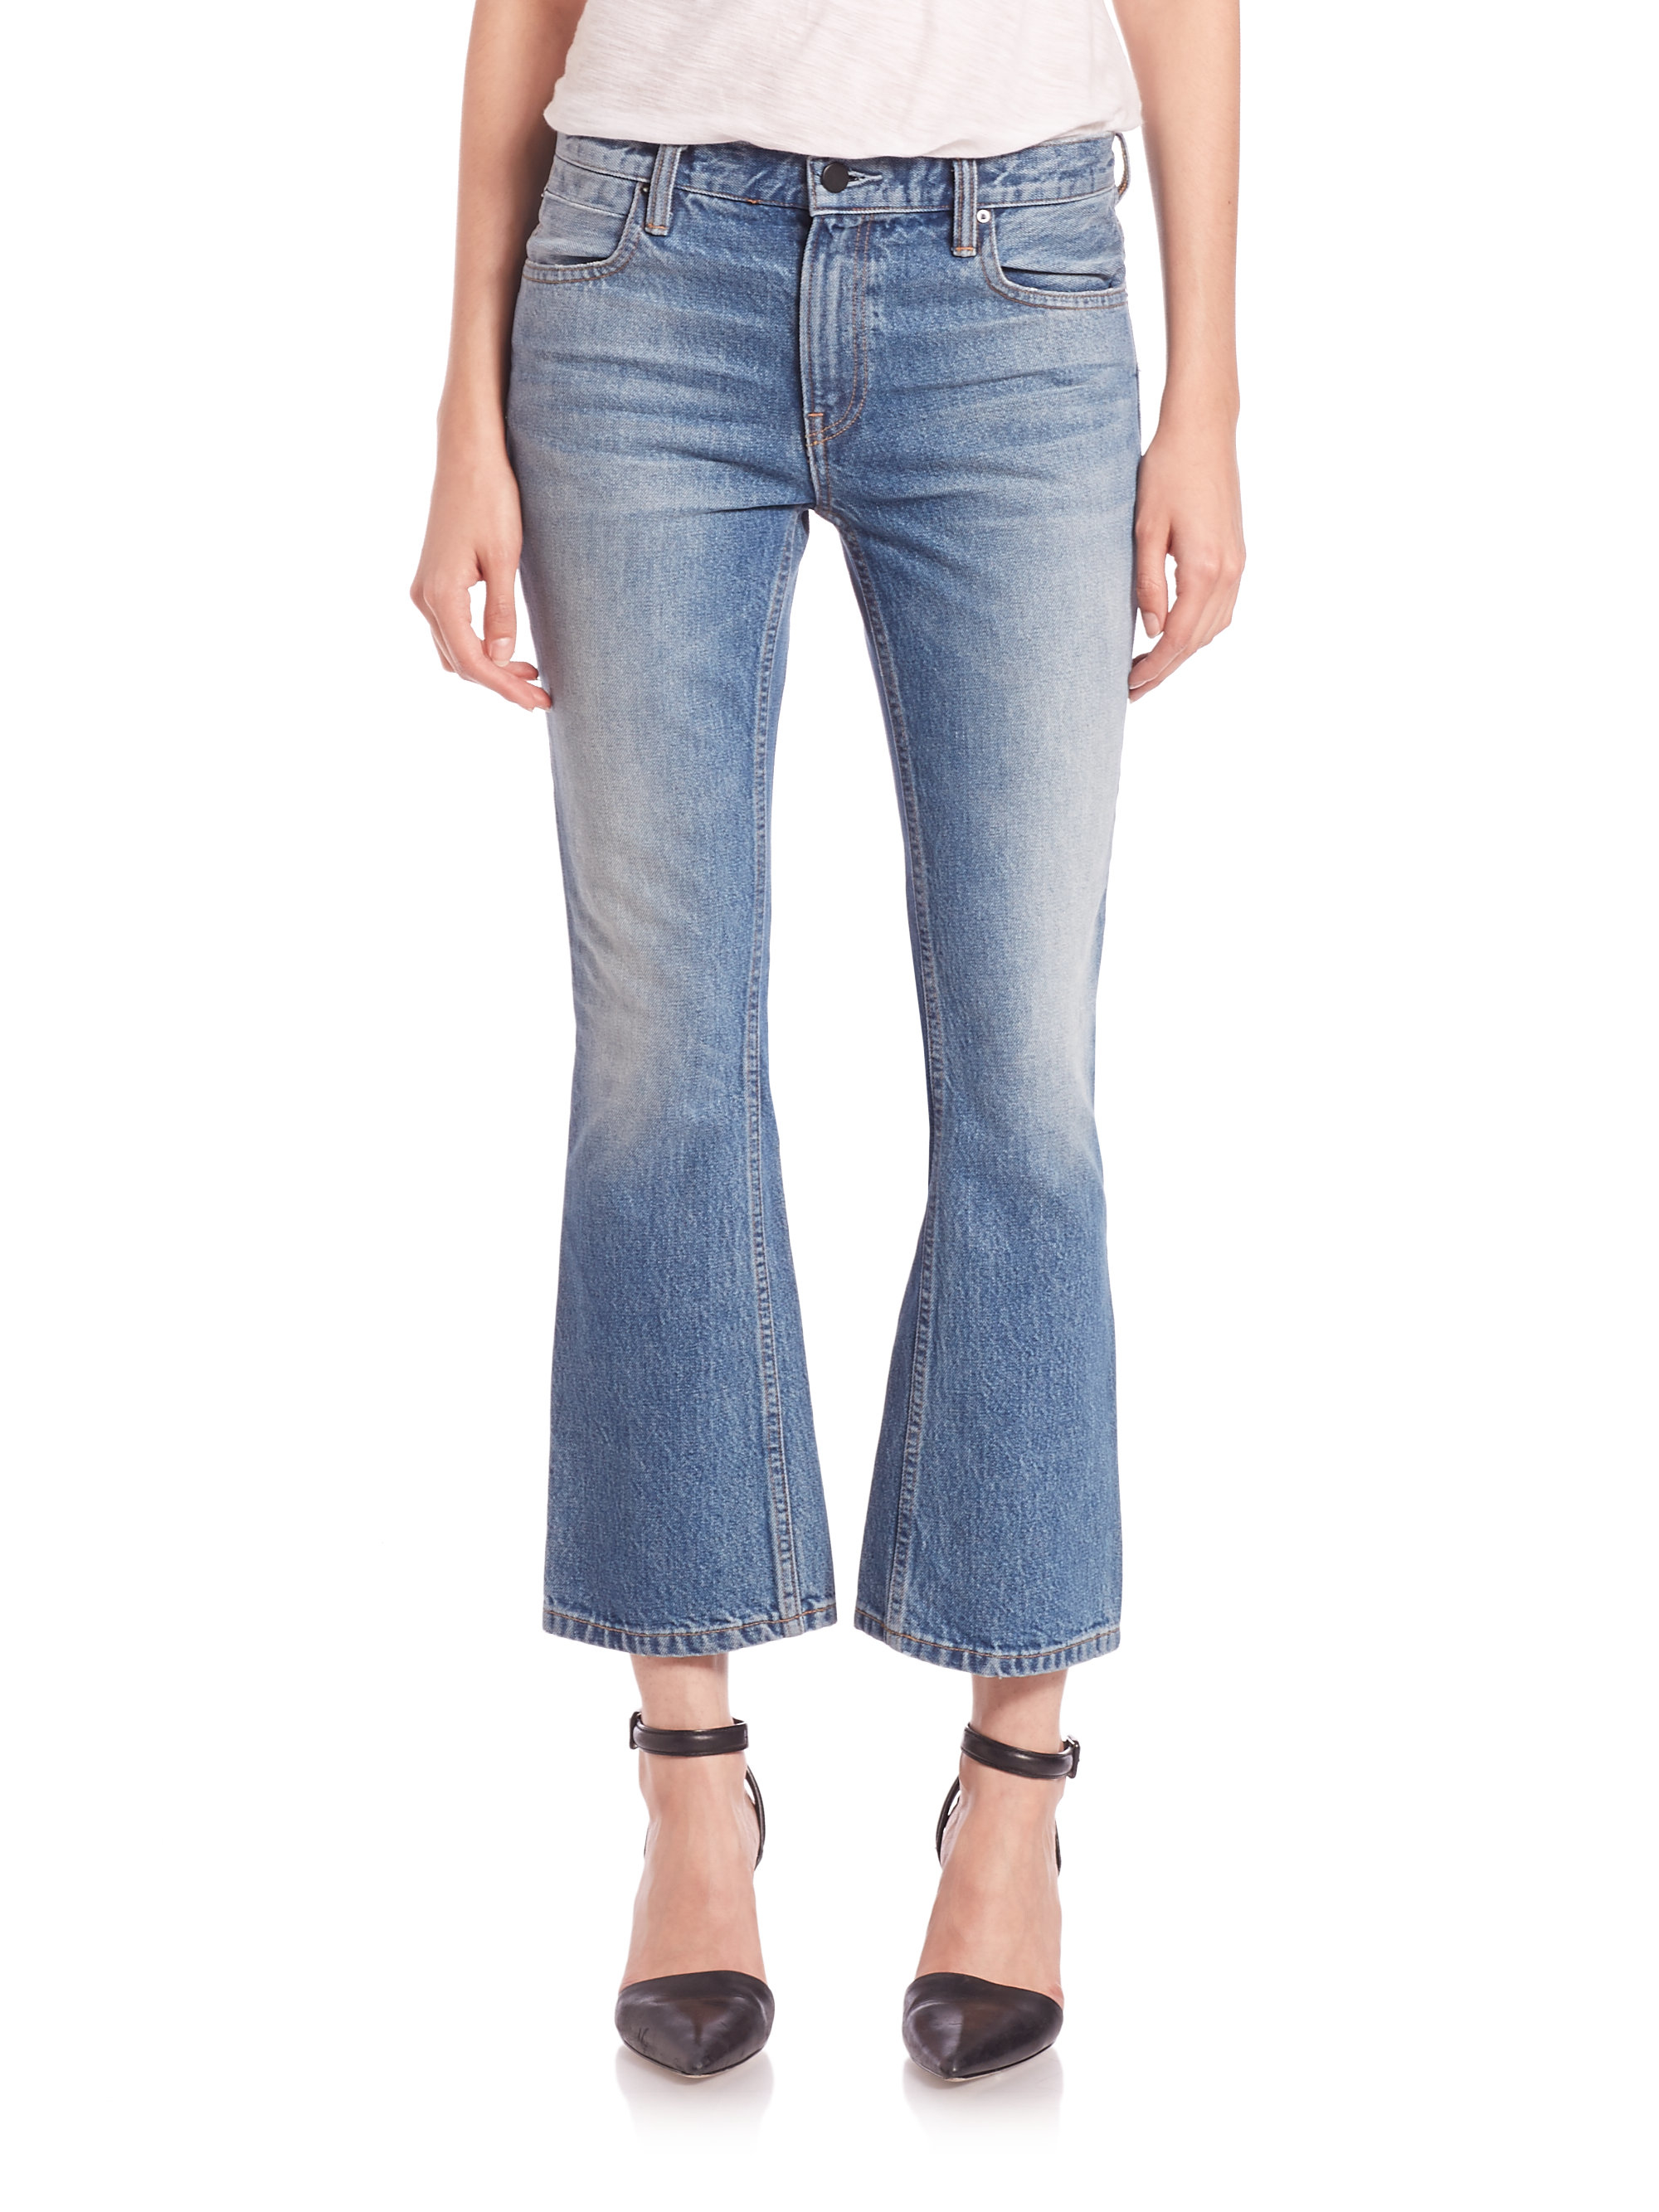 Alexander wang Denim X Trap Cropped Bootcut Jeans in Blue | Lyst